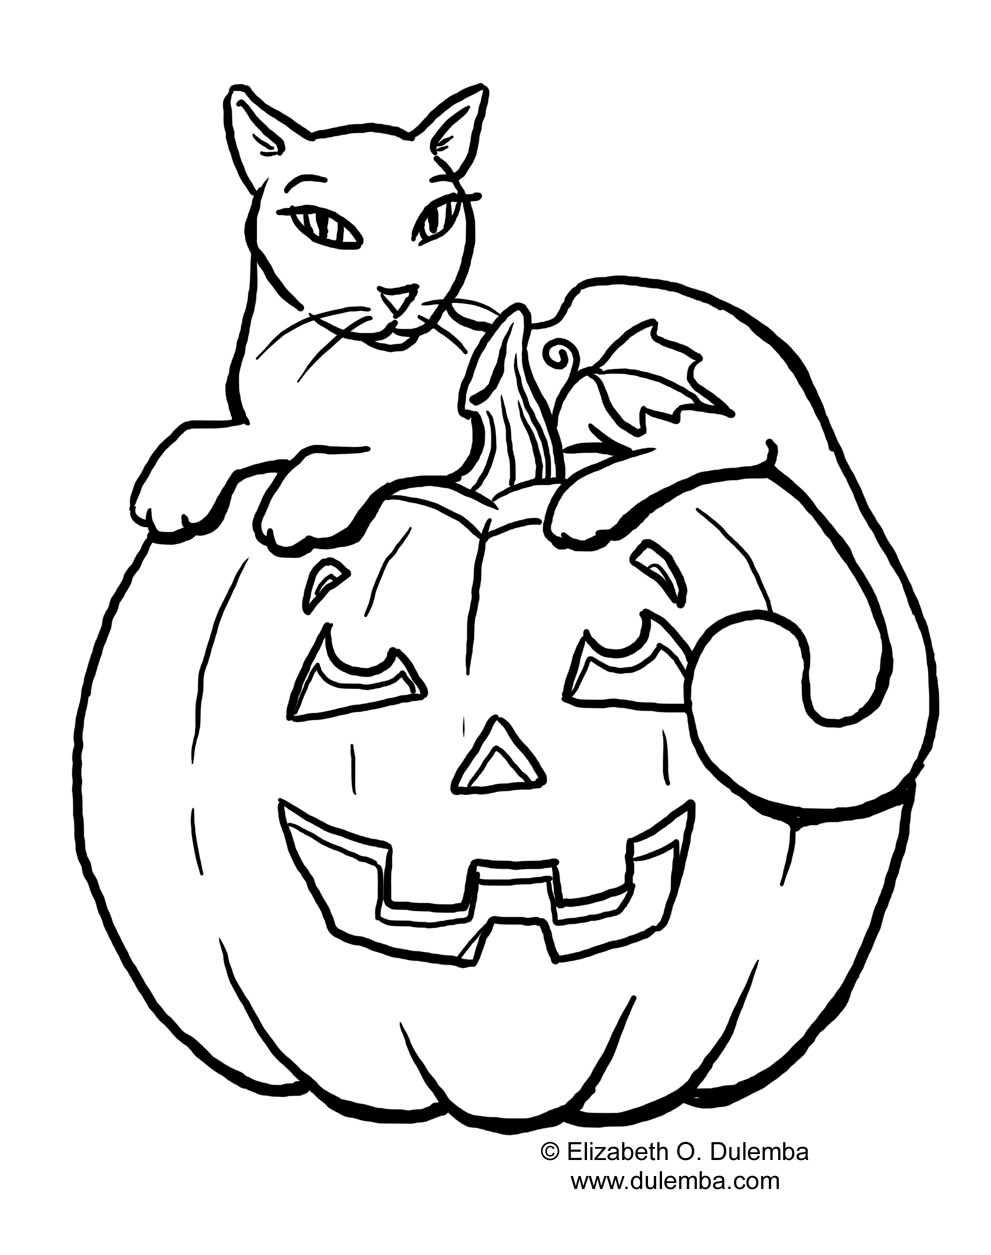 halloween pumpkin pictures to print and color halloween pumpkin coloring pages for kids dora123com to pictures color and print halloween pumpkin